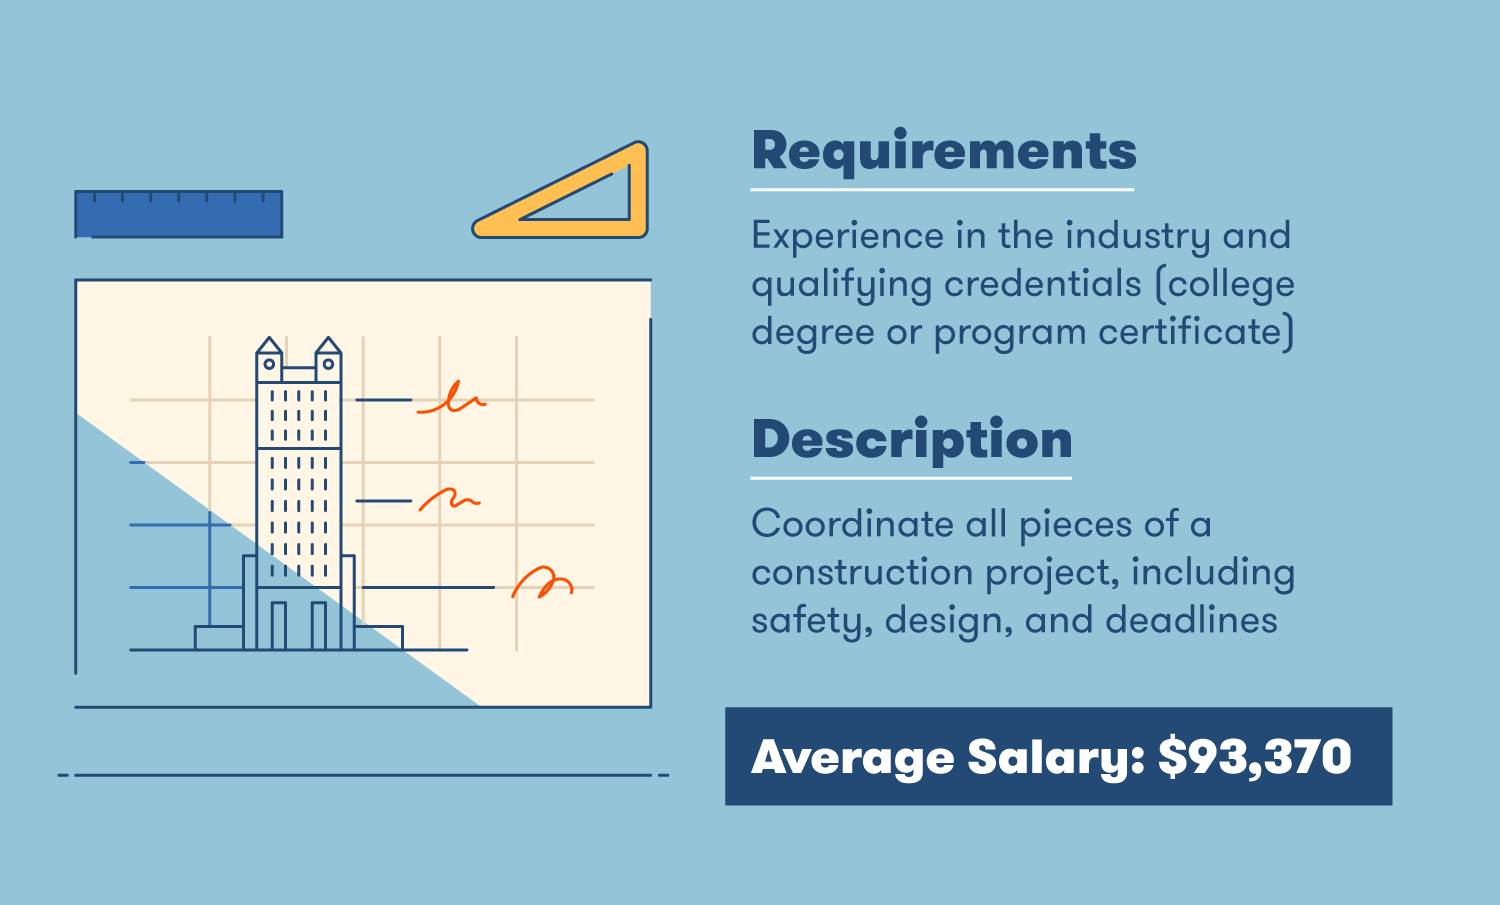 construction manager requirements salary and description